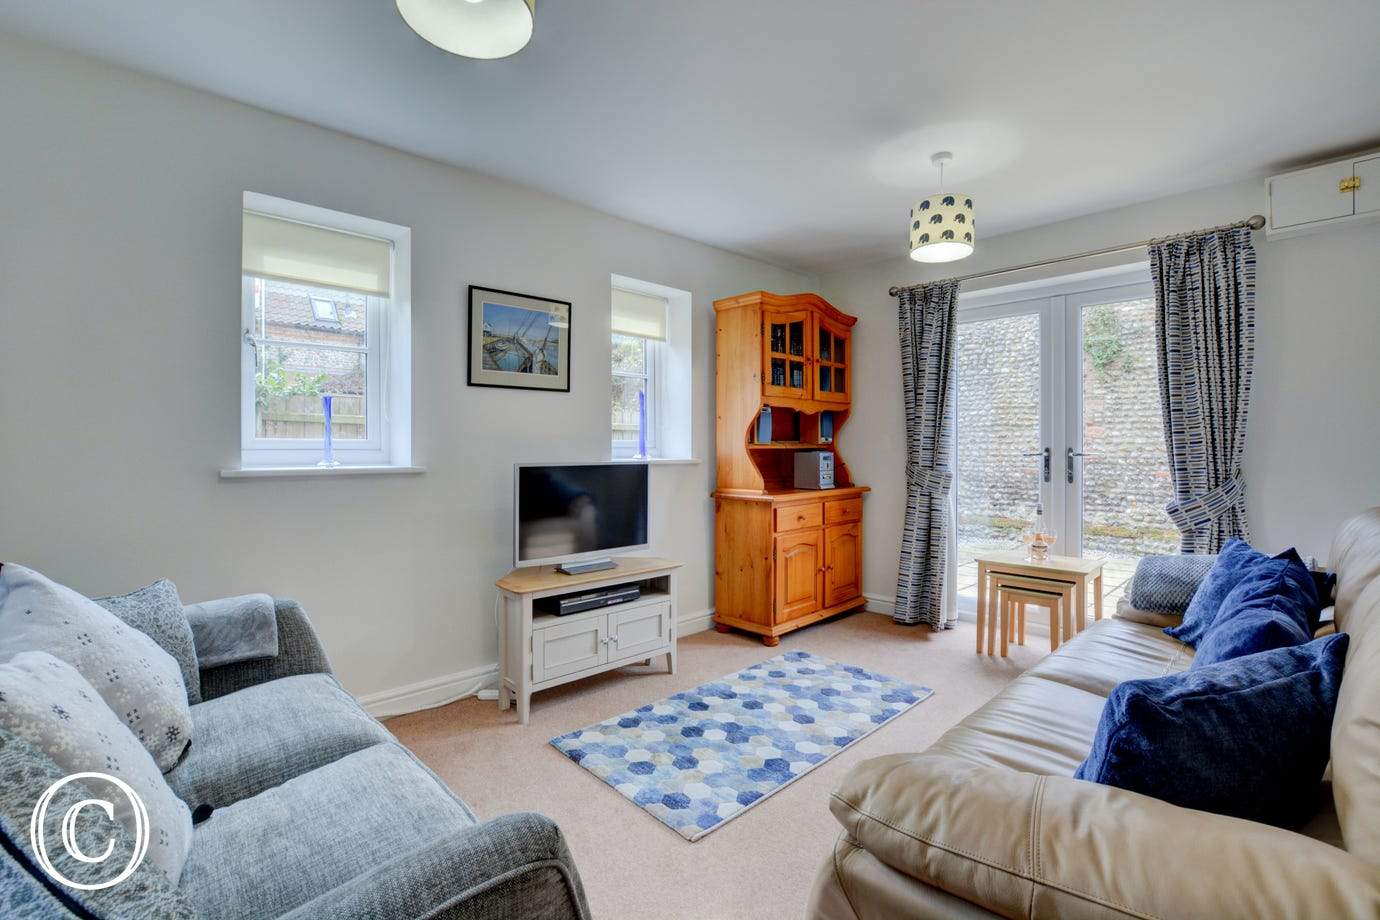 Sitting room with sofas & television